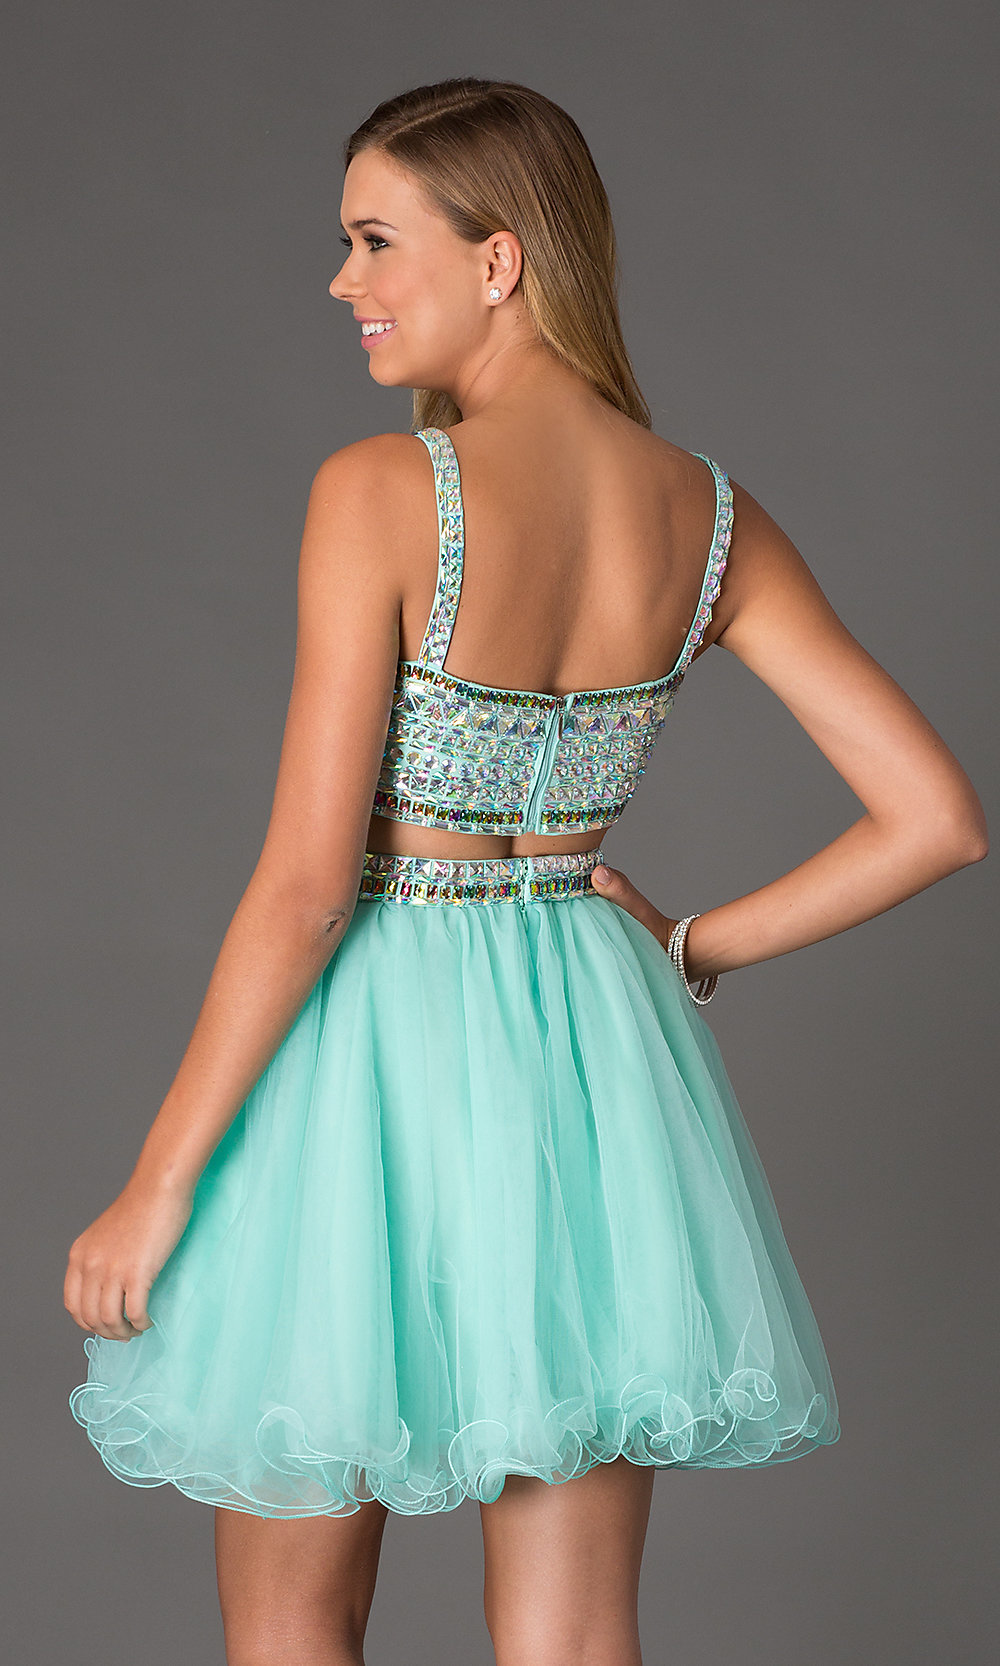 Find great deals on eBay for dress crop top. Shop with confidence.